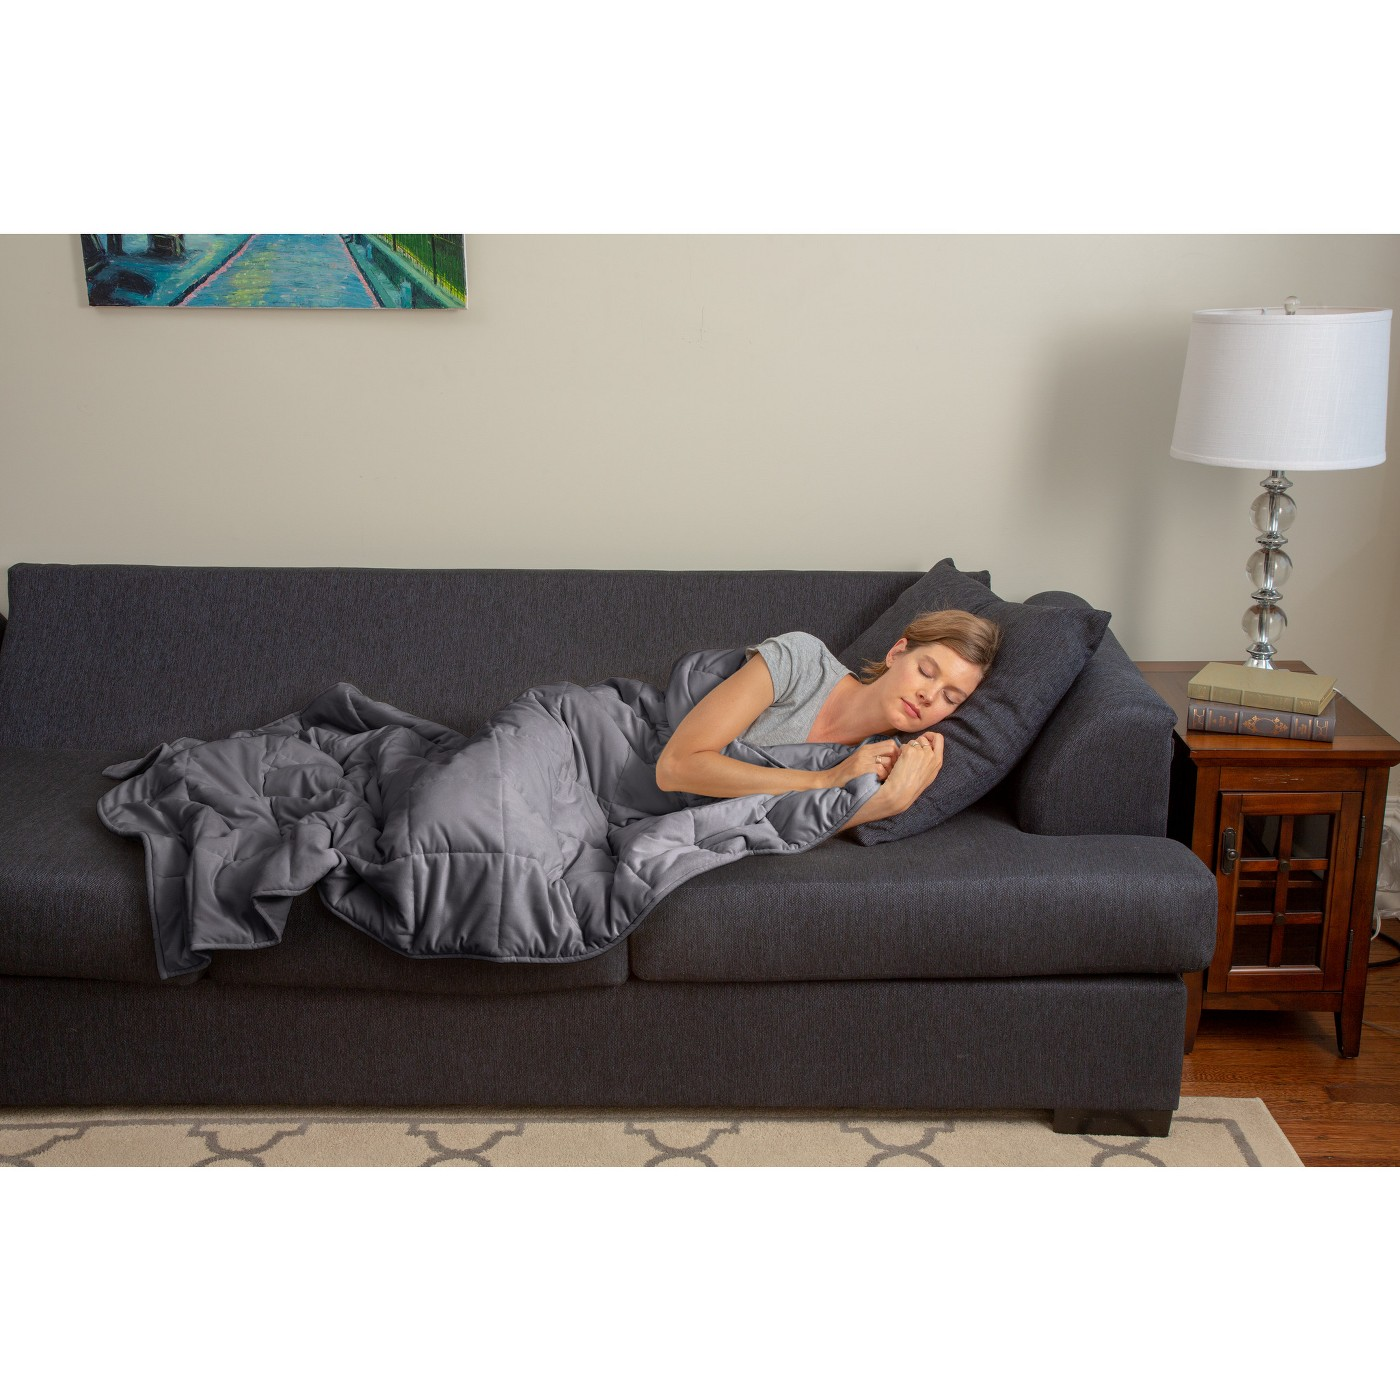 Woman lies on couch with gray weighted blanket.